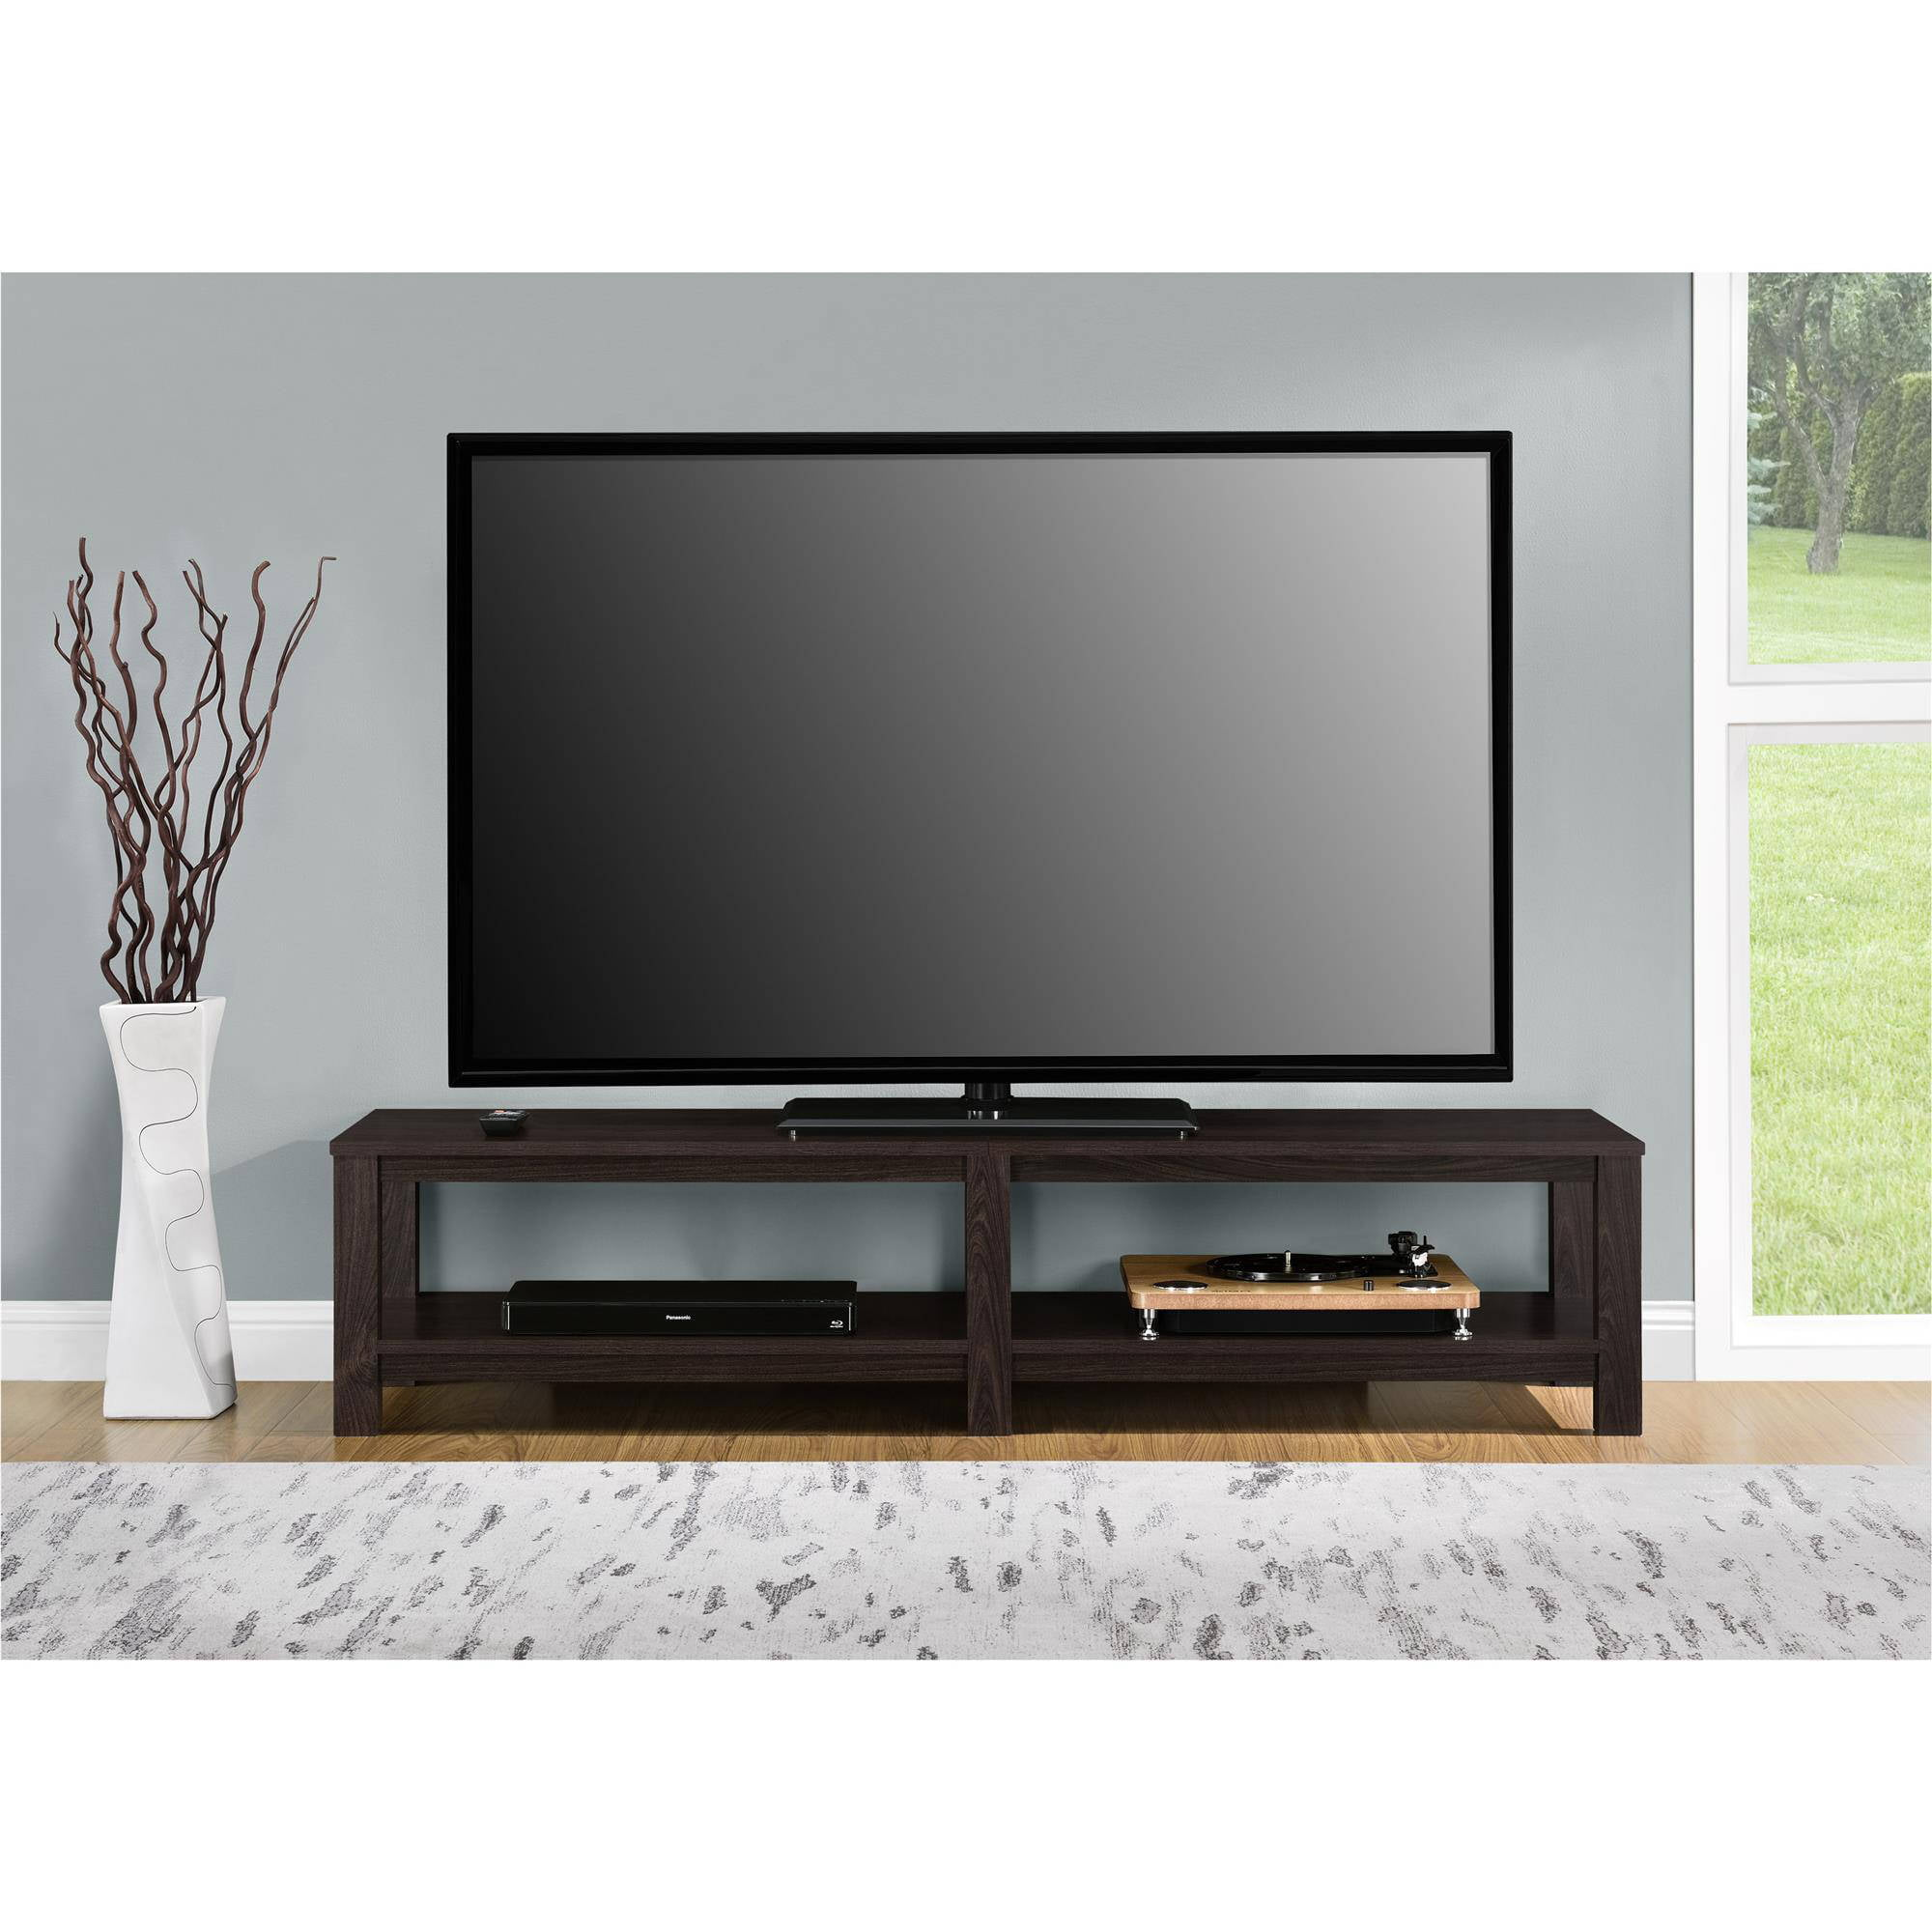 Beau TV Stand 65 Inch Flat Screen Entertainment Media Home Center Console Table  Mount